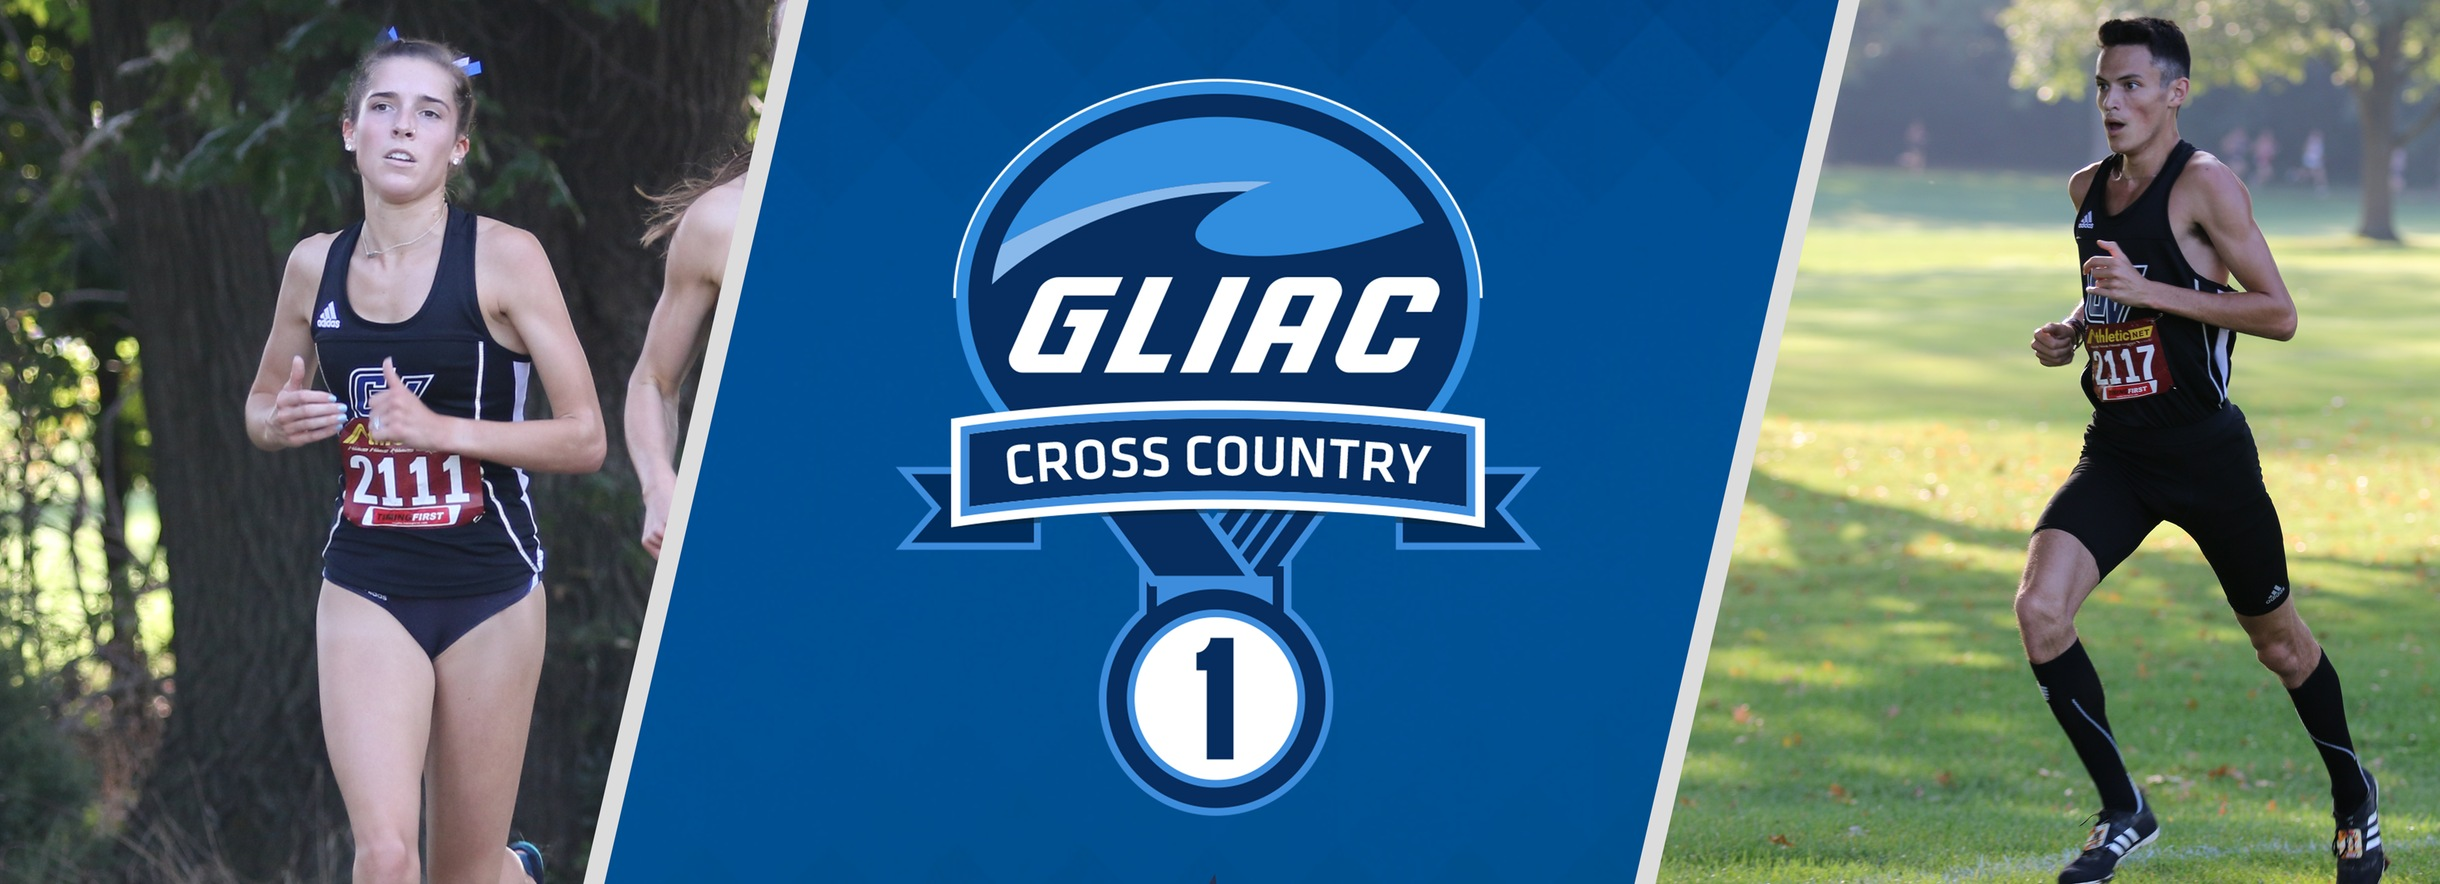 GVSU's Ludge and Chada Earn GLIAC Cross Country Athlete of the Week Accolades